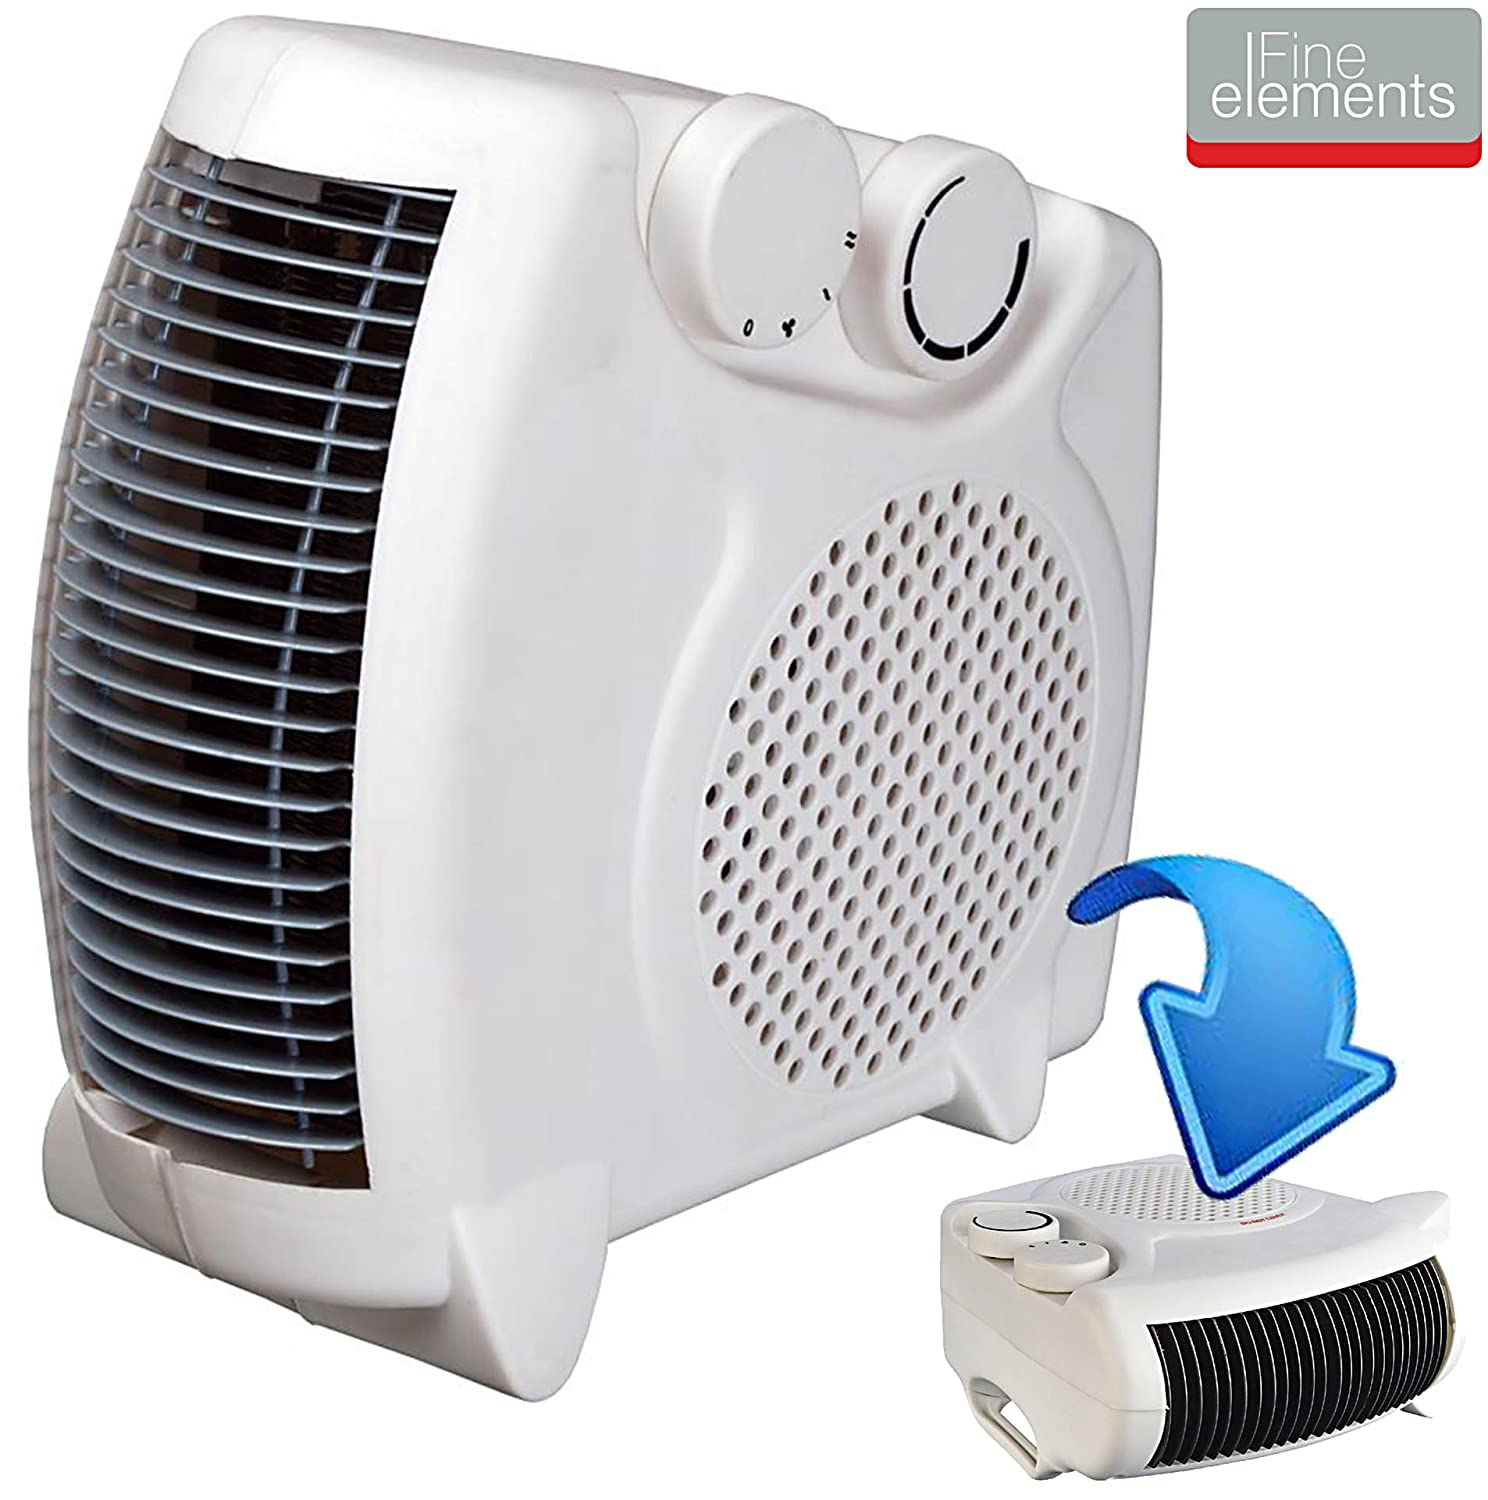 2000W PORTABLE SILENT ELECTRIC FAN HEATER HOT & COOL UPRIGHT BRAND NEW IN BOX Status 5038673980430